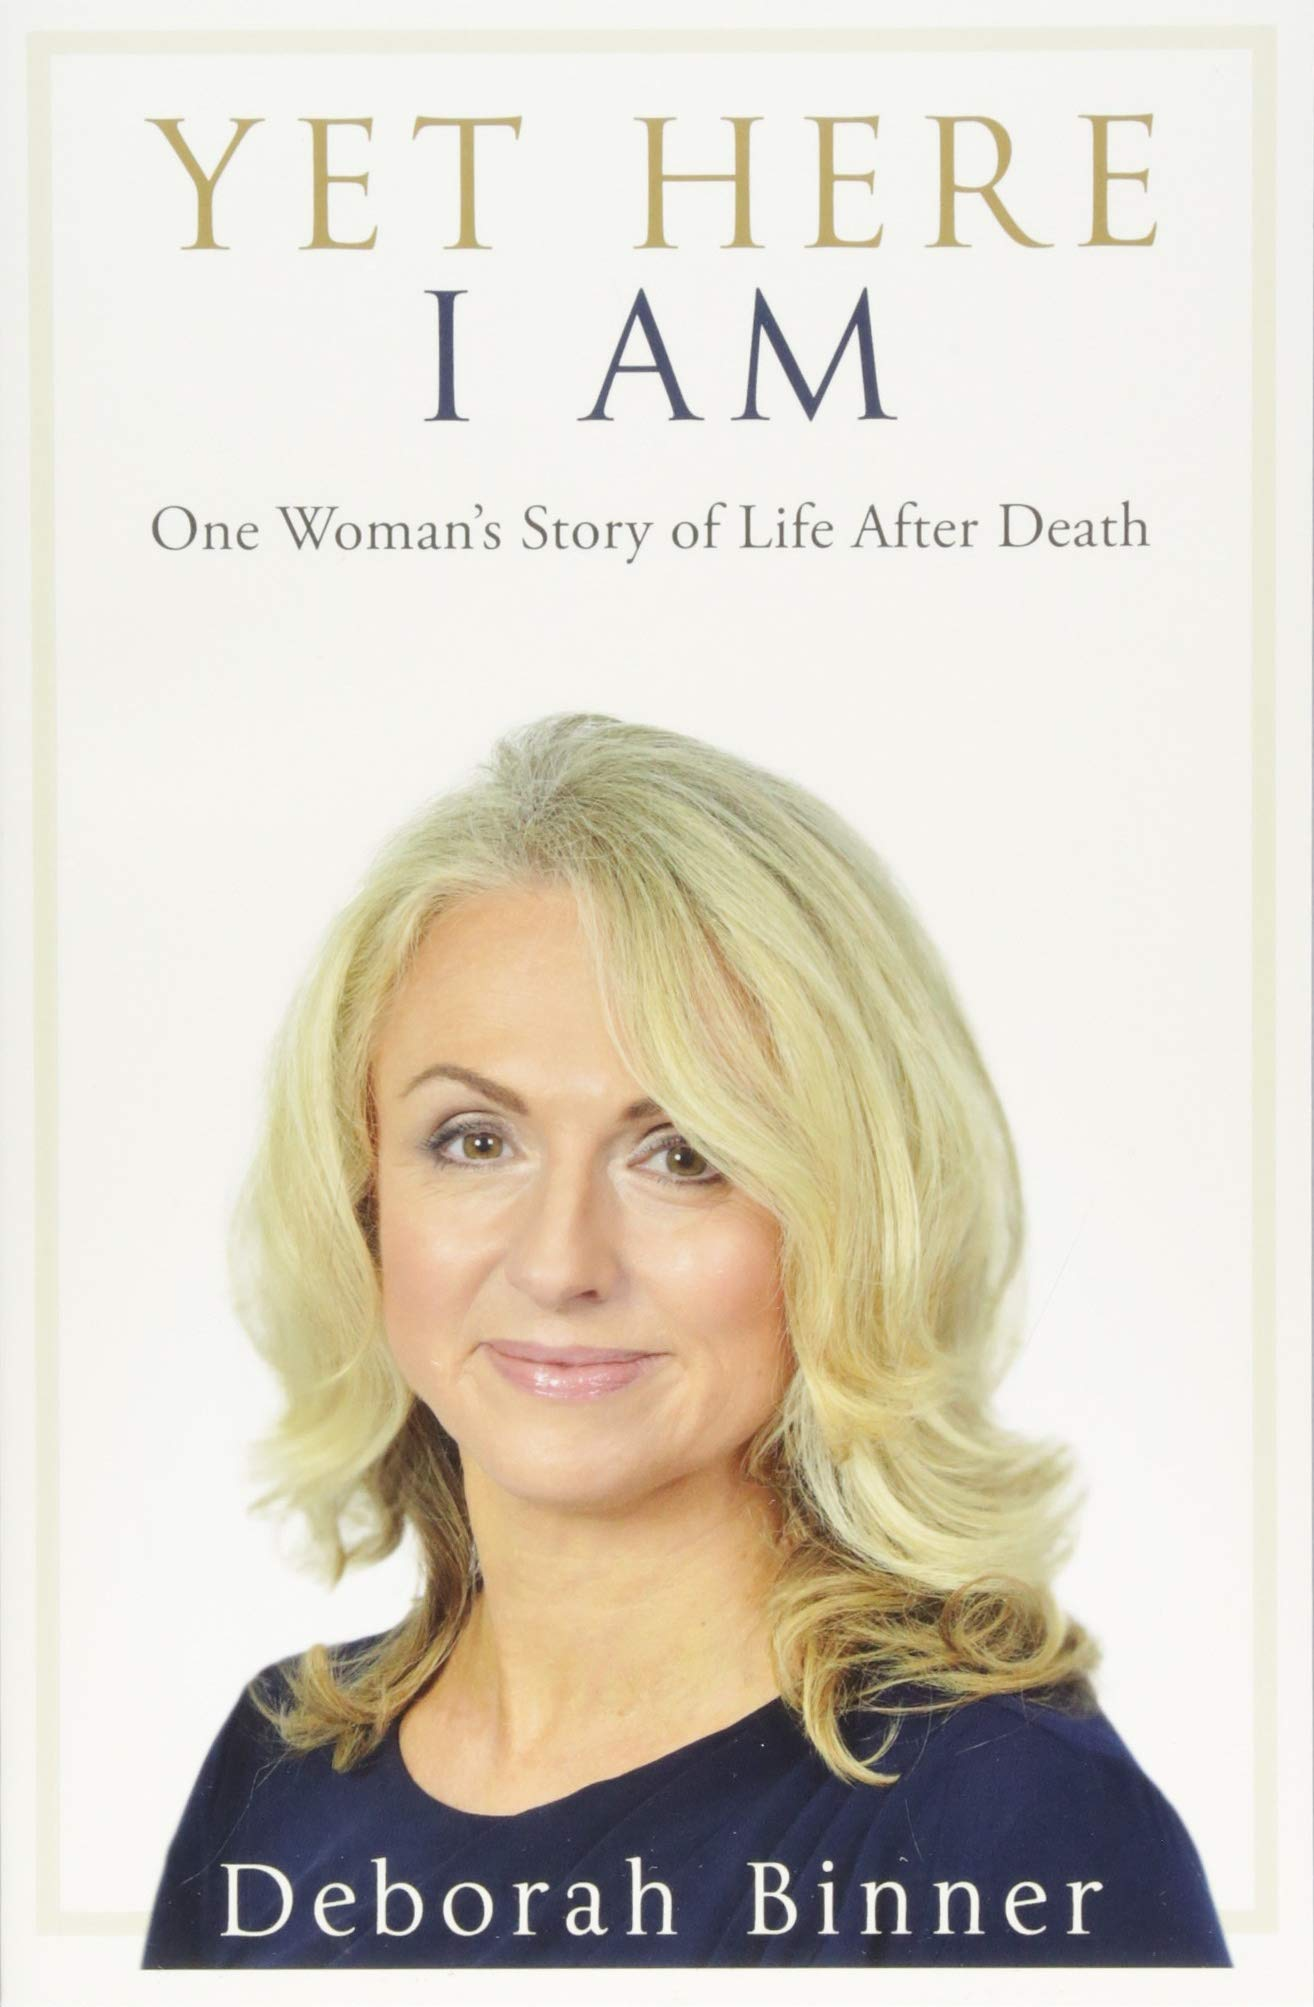 c6c46d5e6dc Yet Here I Am: One Woman's Story of Life After Loss: Amazon.co.uk ...